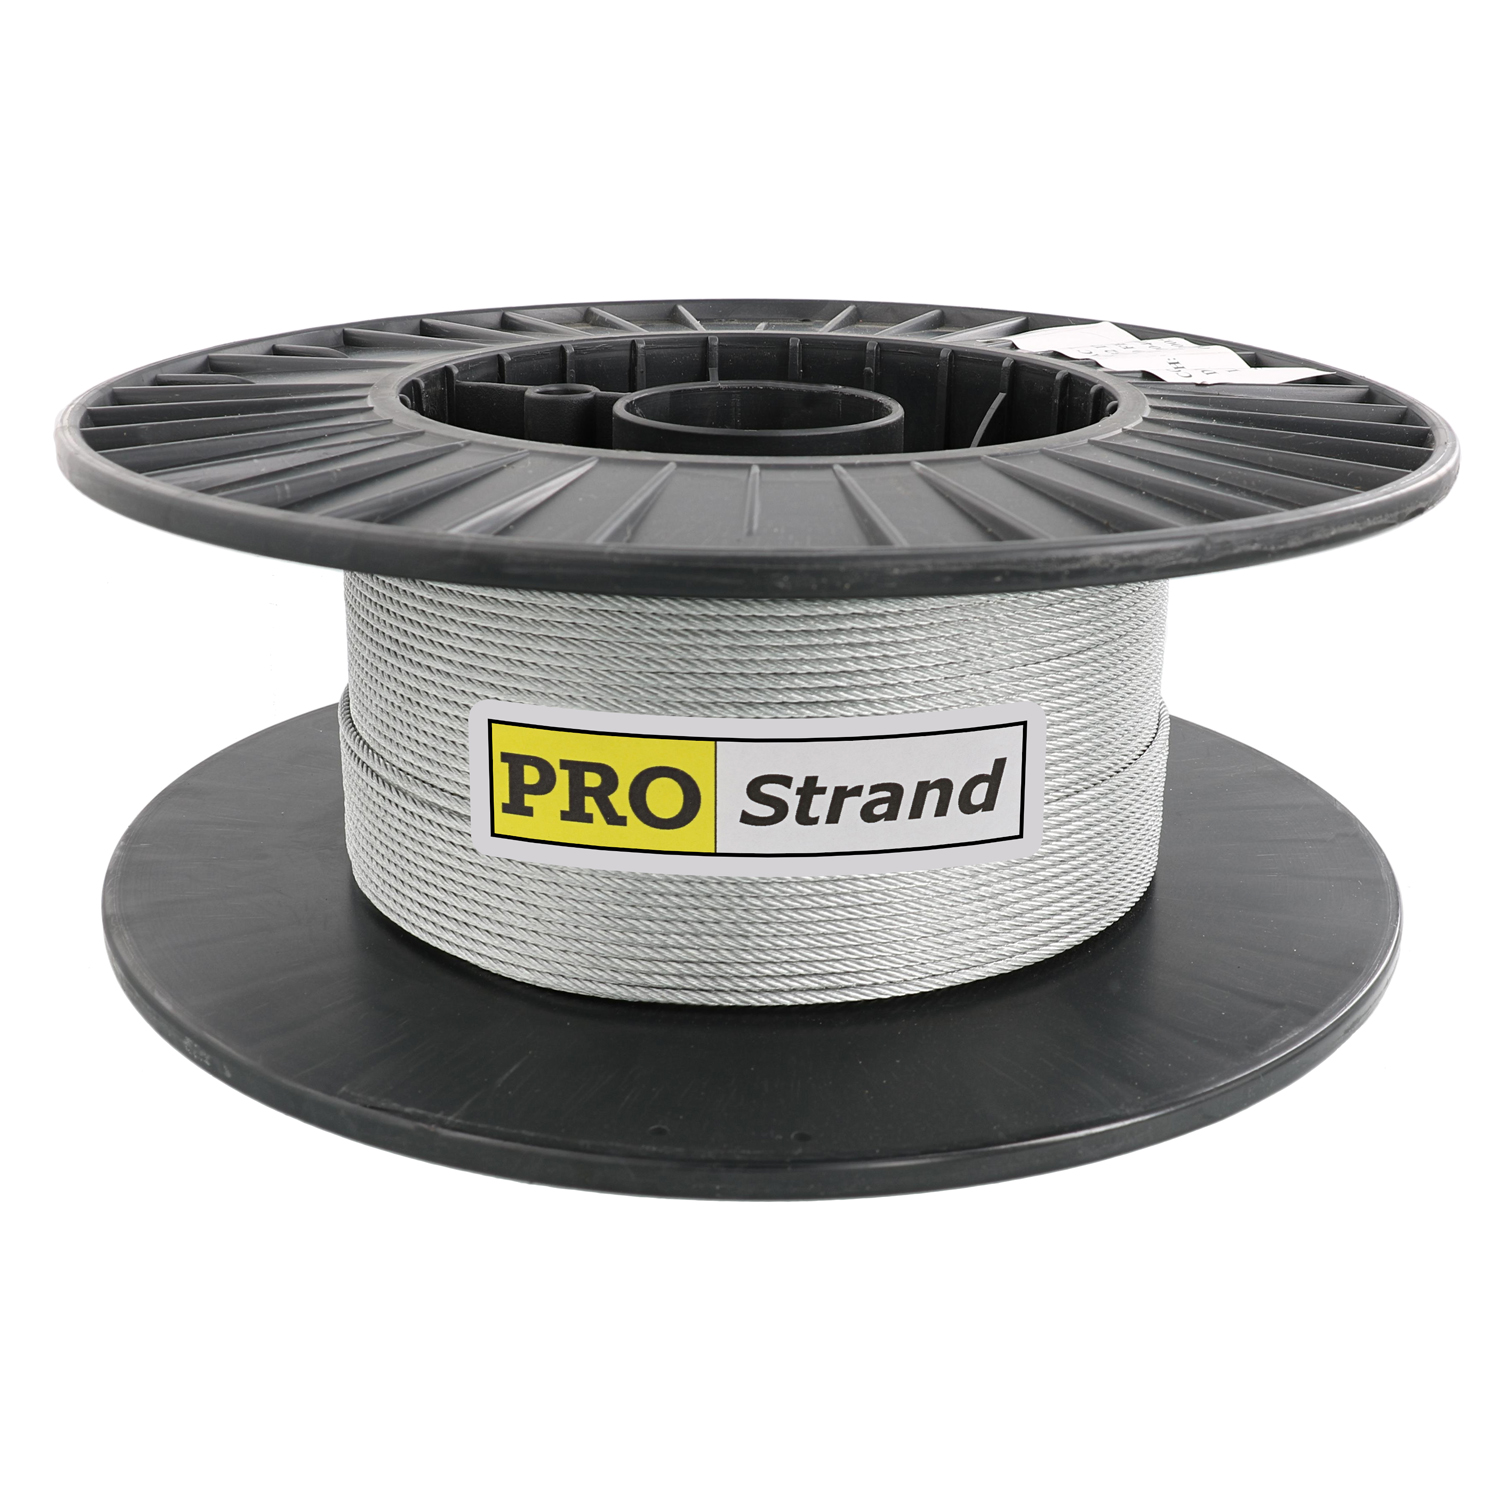 3⁄32 inch, 7 x 19 Galvanized Cable